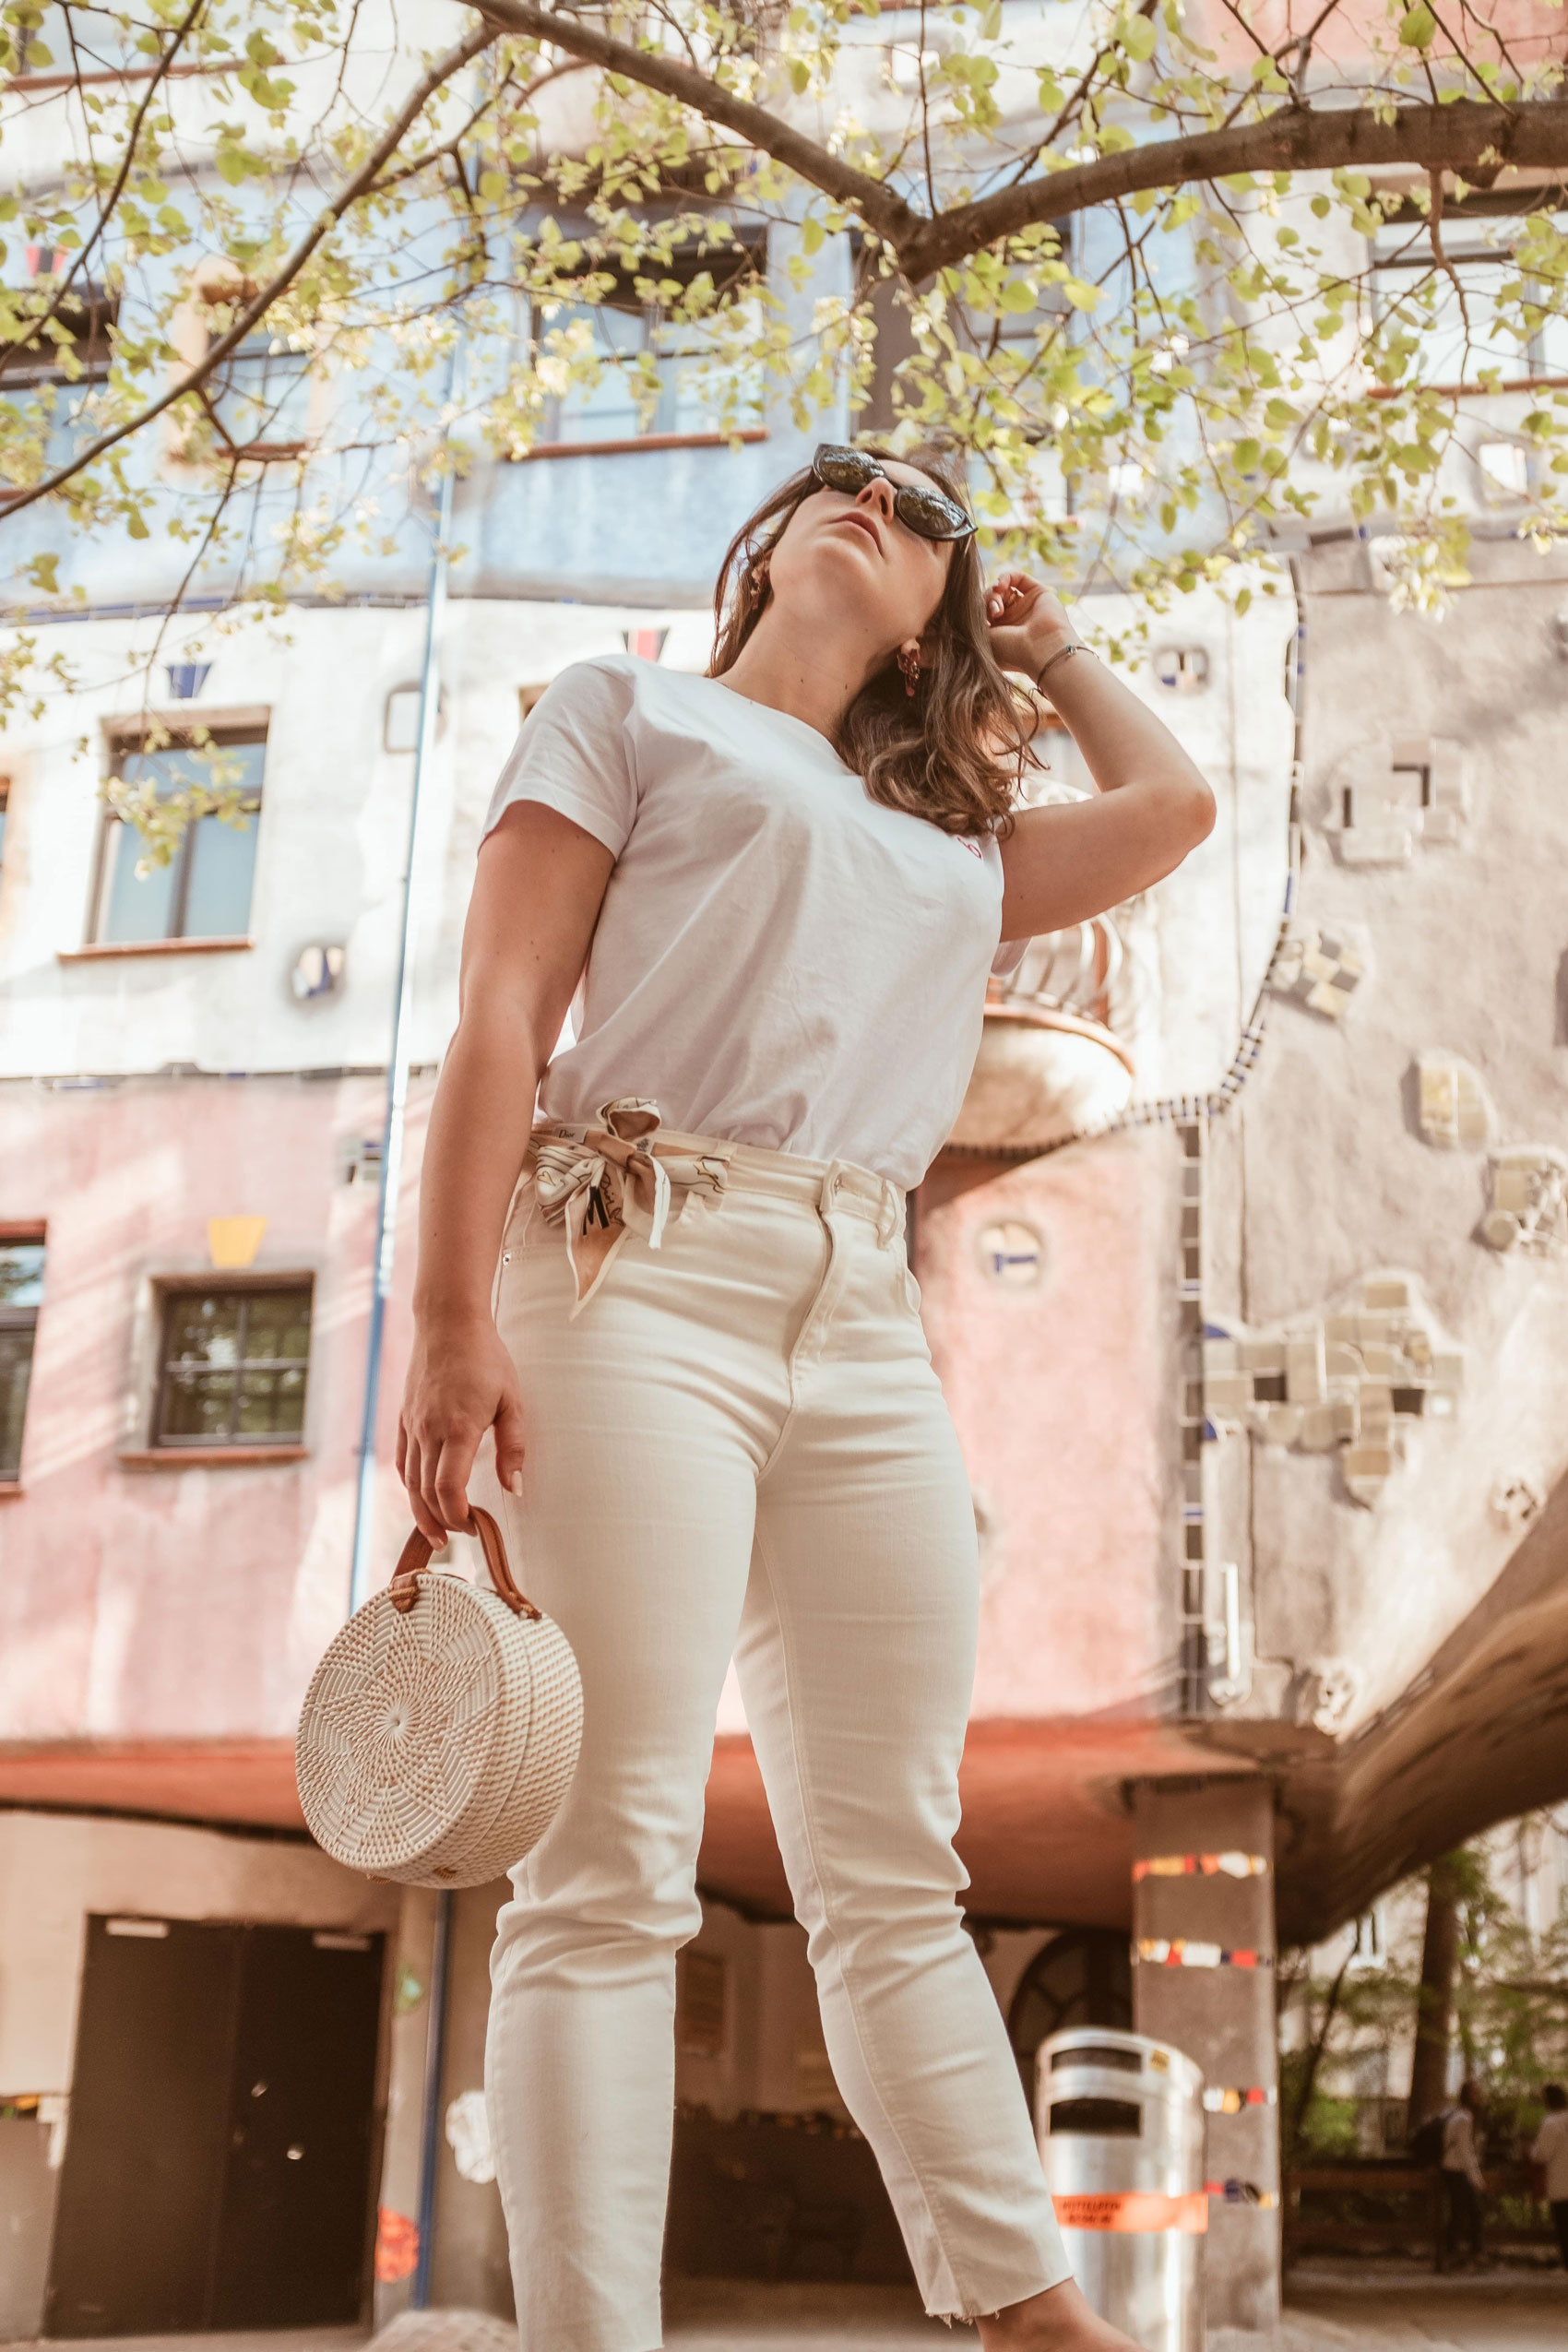 White look with Straw bag by Arara Pintada for Vienna Capsule Wardrobe